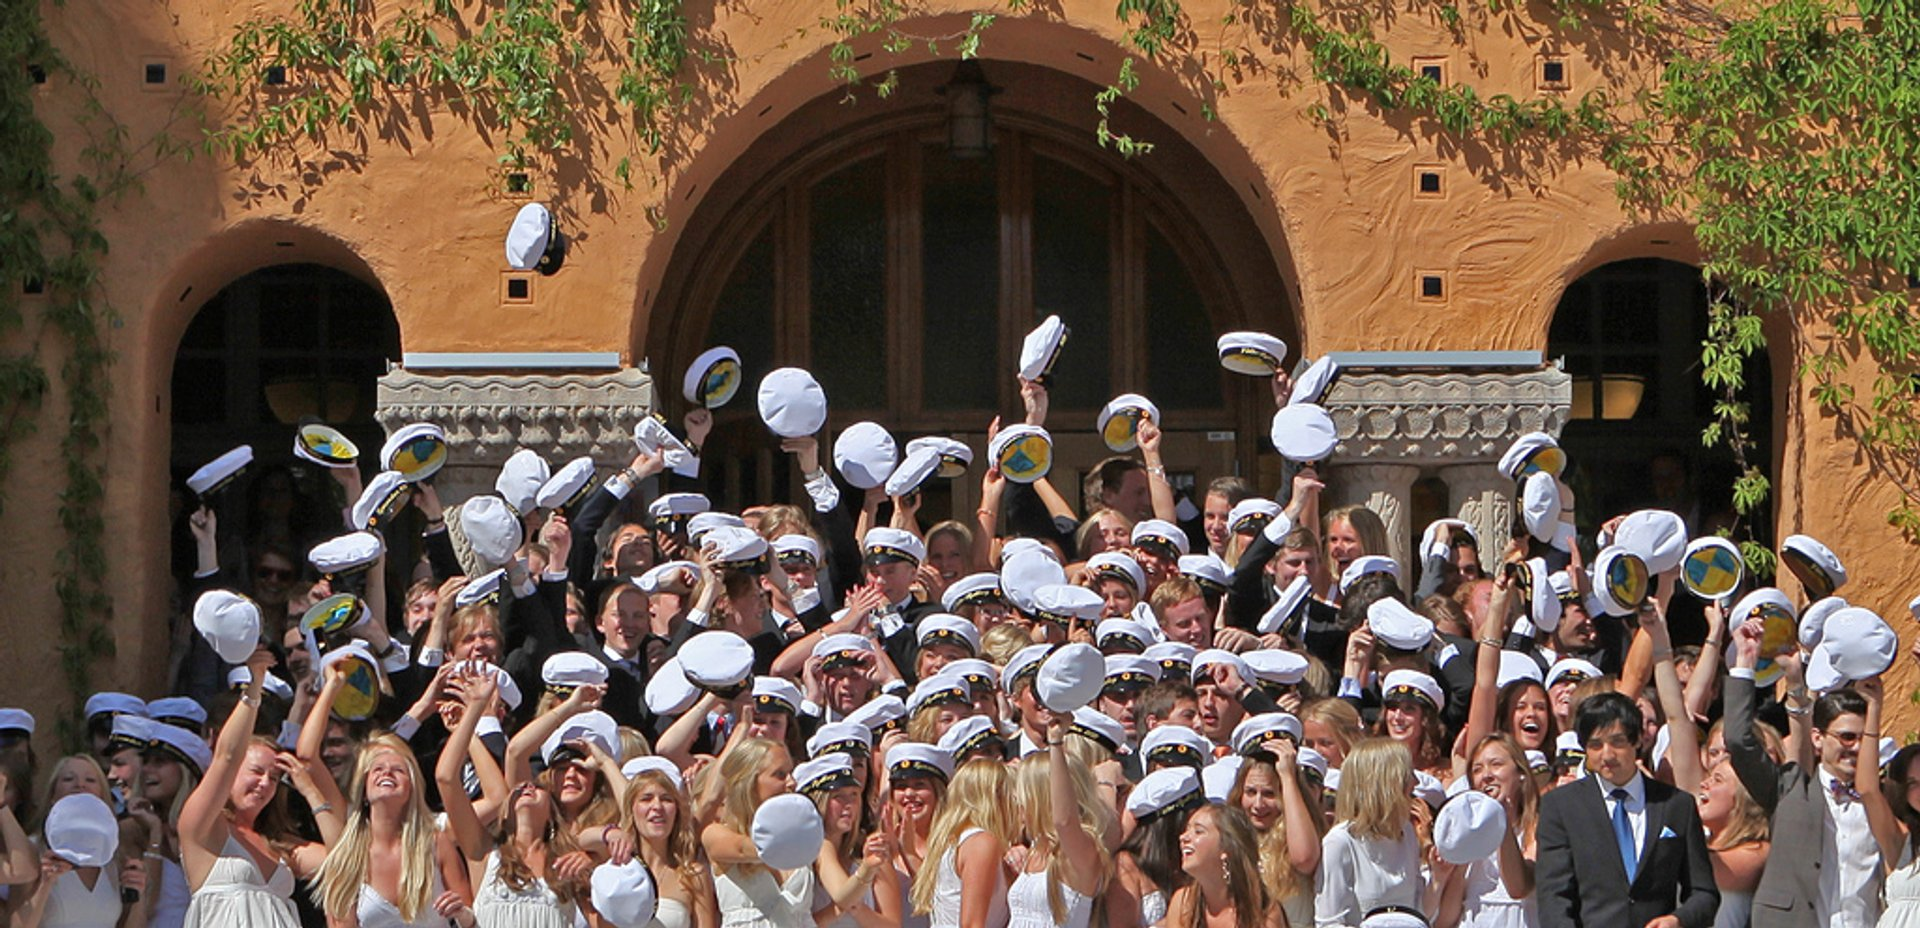 Highschool Graduation in Sweden - Best Season 2019